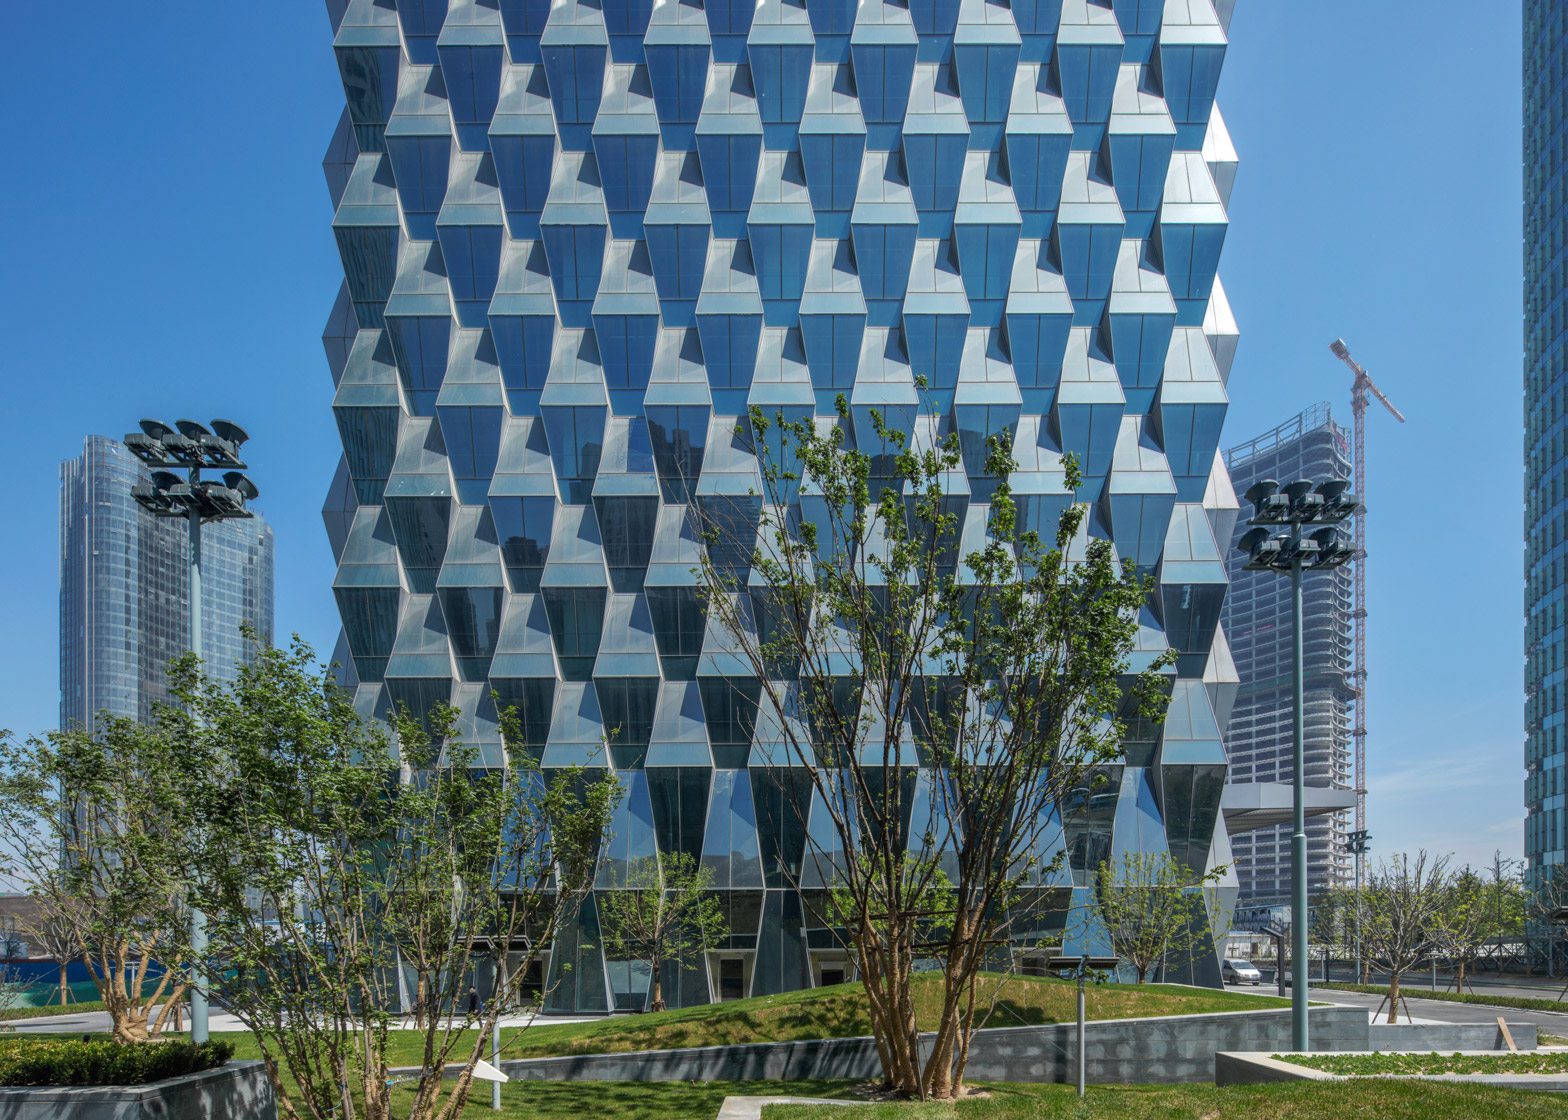 Beijing Greenland Centre by skidmore Owings and Merill is a 55 storey tower with prism-like glass cladding